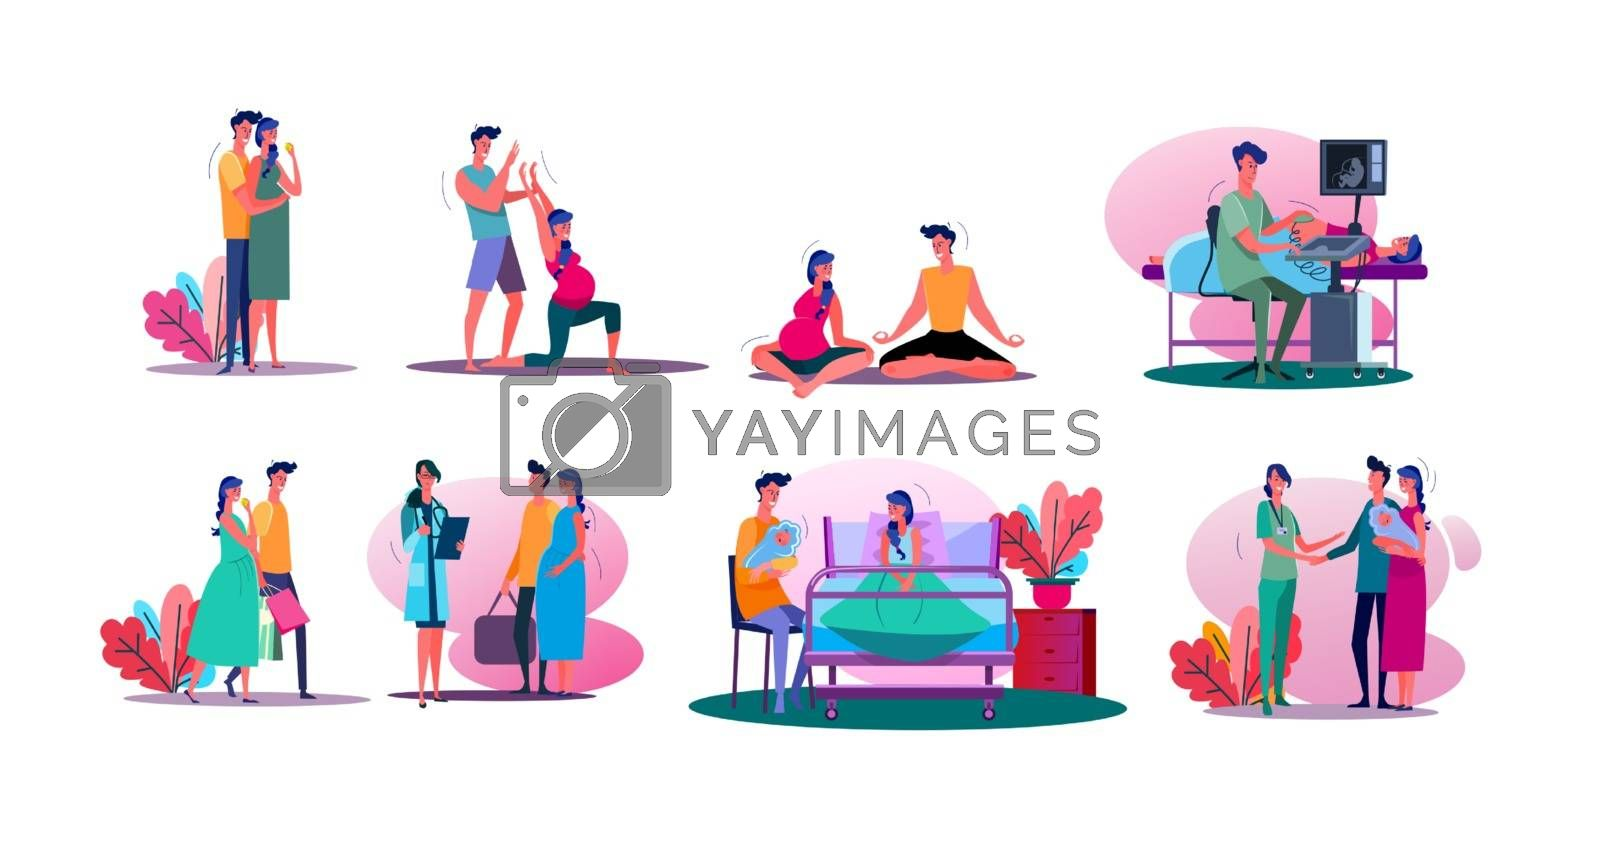 Having baby set. Pregnant couple doing yoga, walking outdoors, visiting doctor, holding baby. Flat vector illustrations. Parenthood concept for banner, website design or landing web page